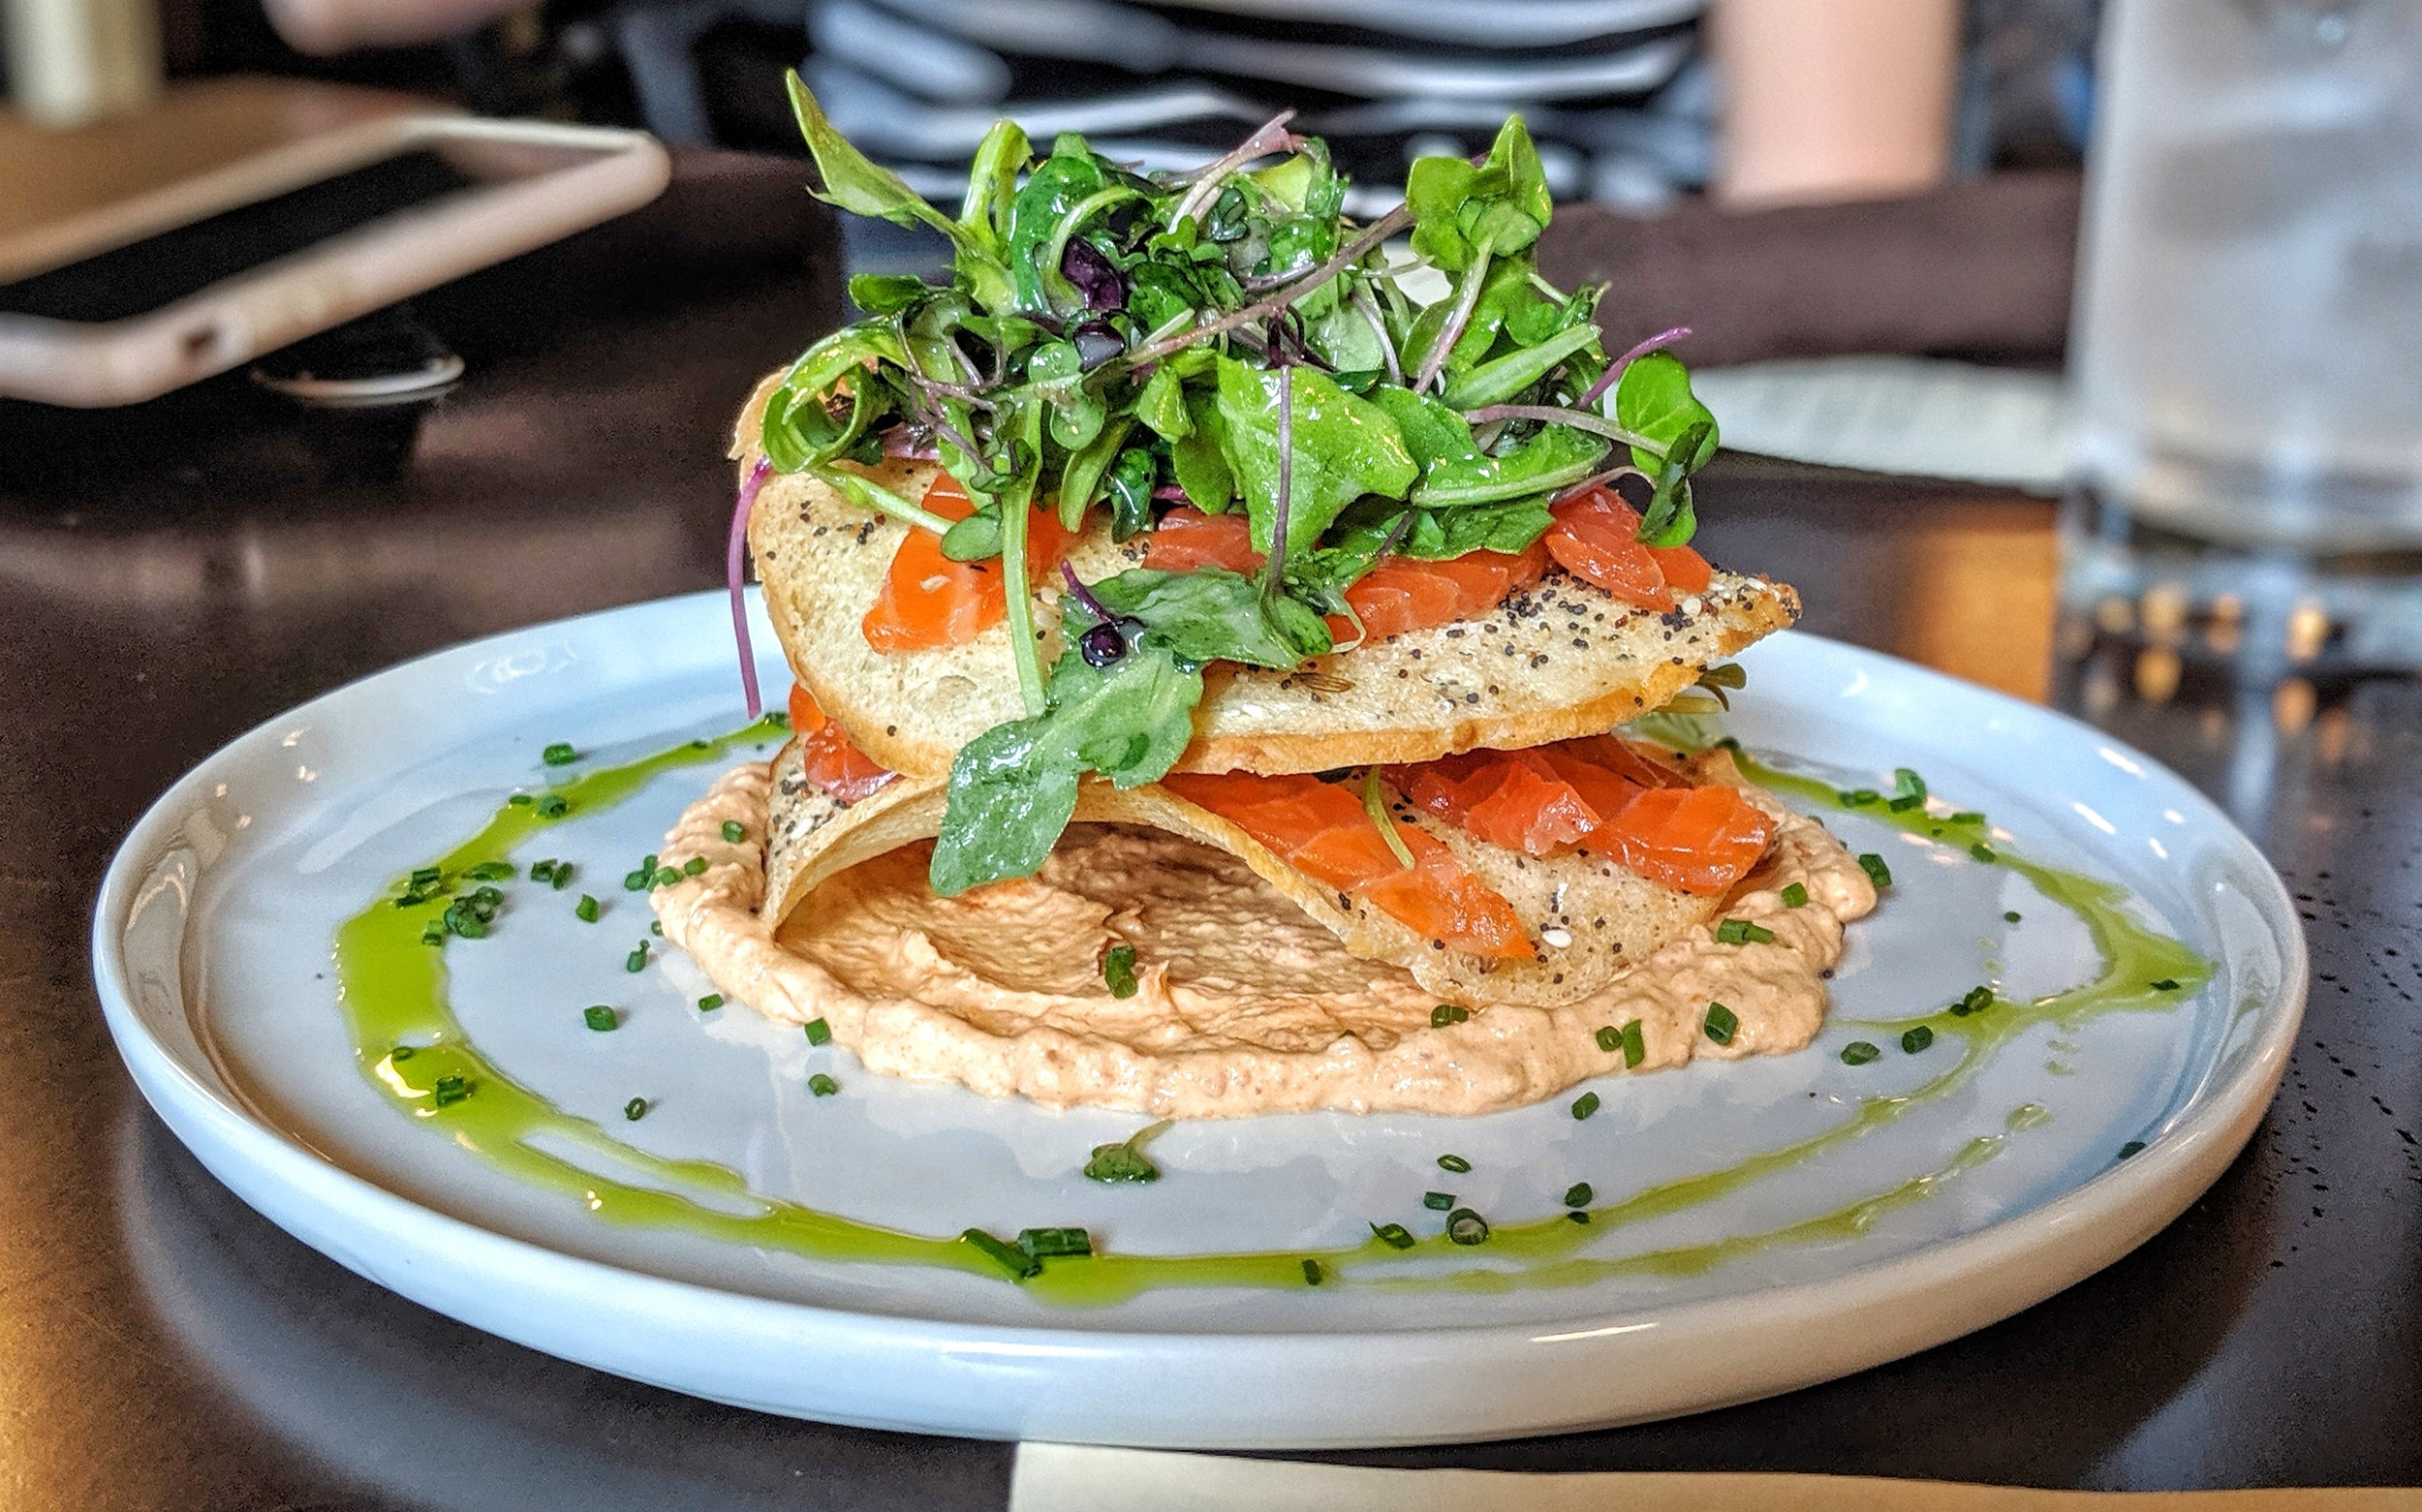 - Cured Trout with Bagel Chips, Spicy Greens, 'Nduja Créme Fraîche, Chive from Fress